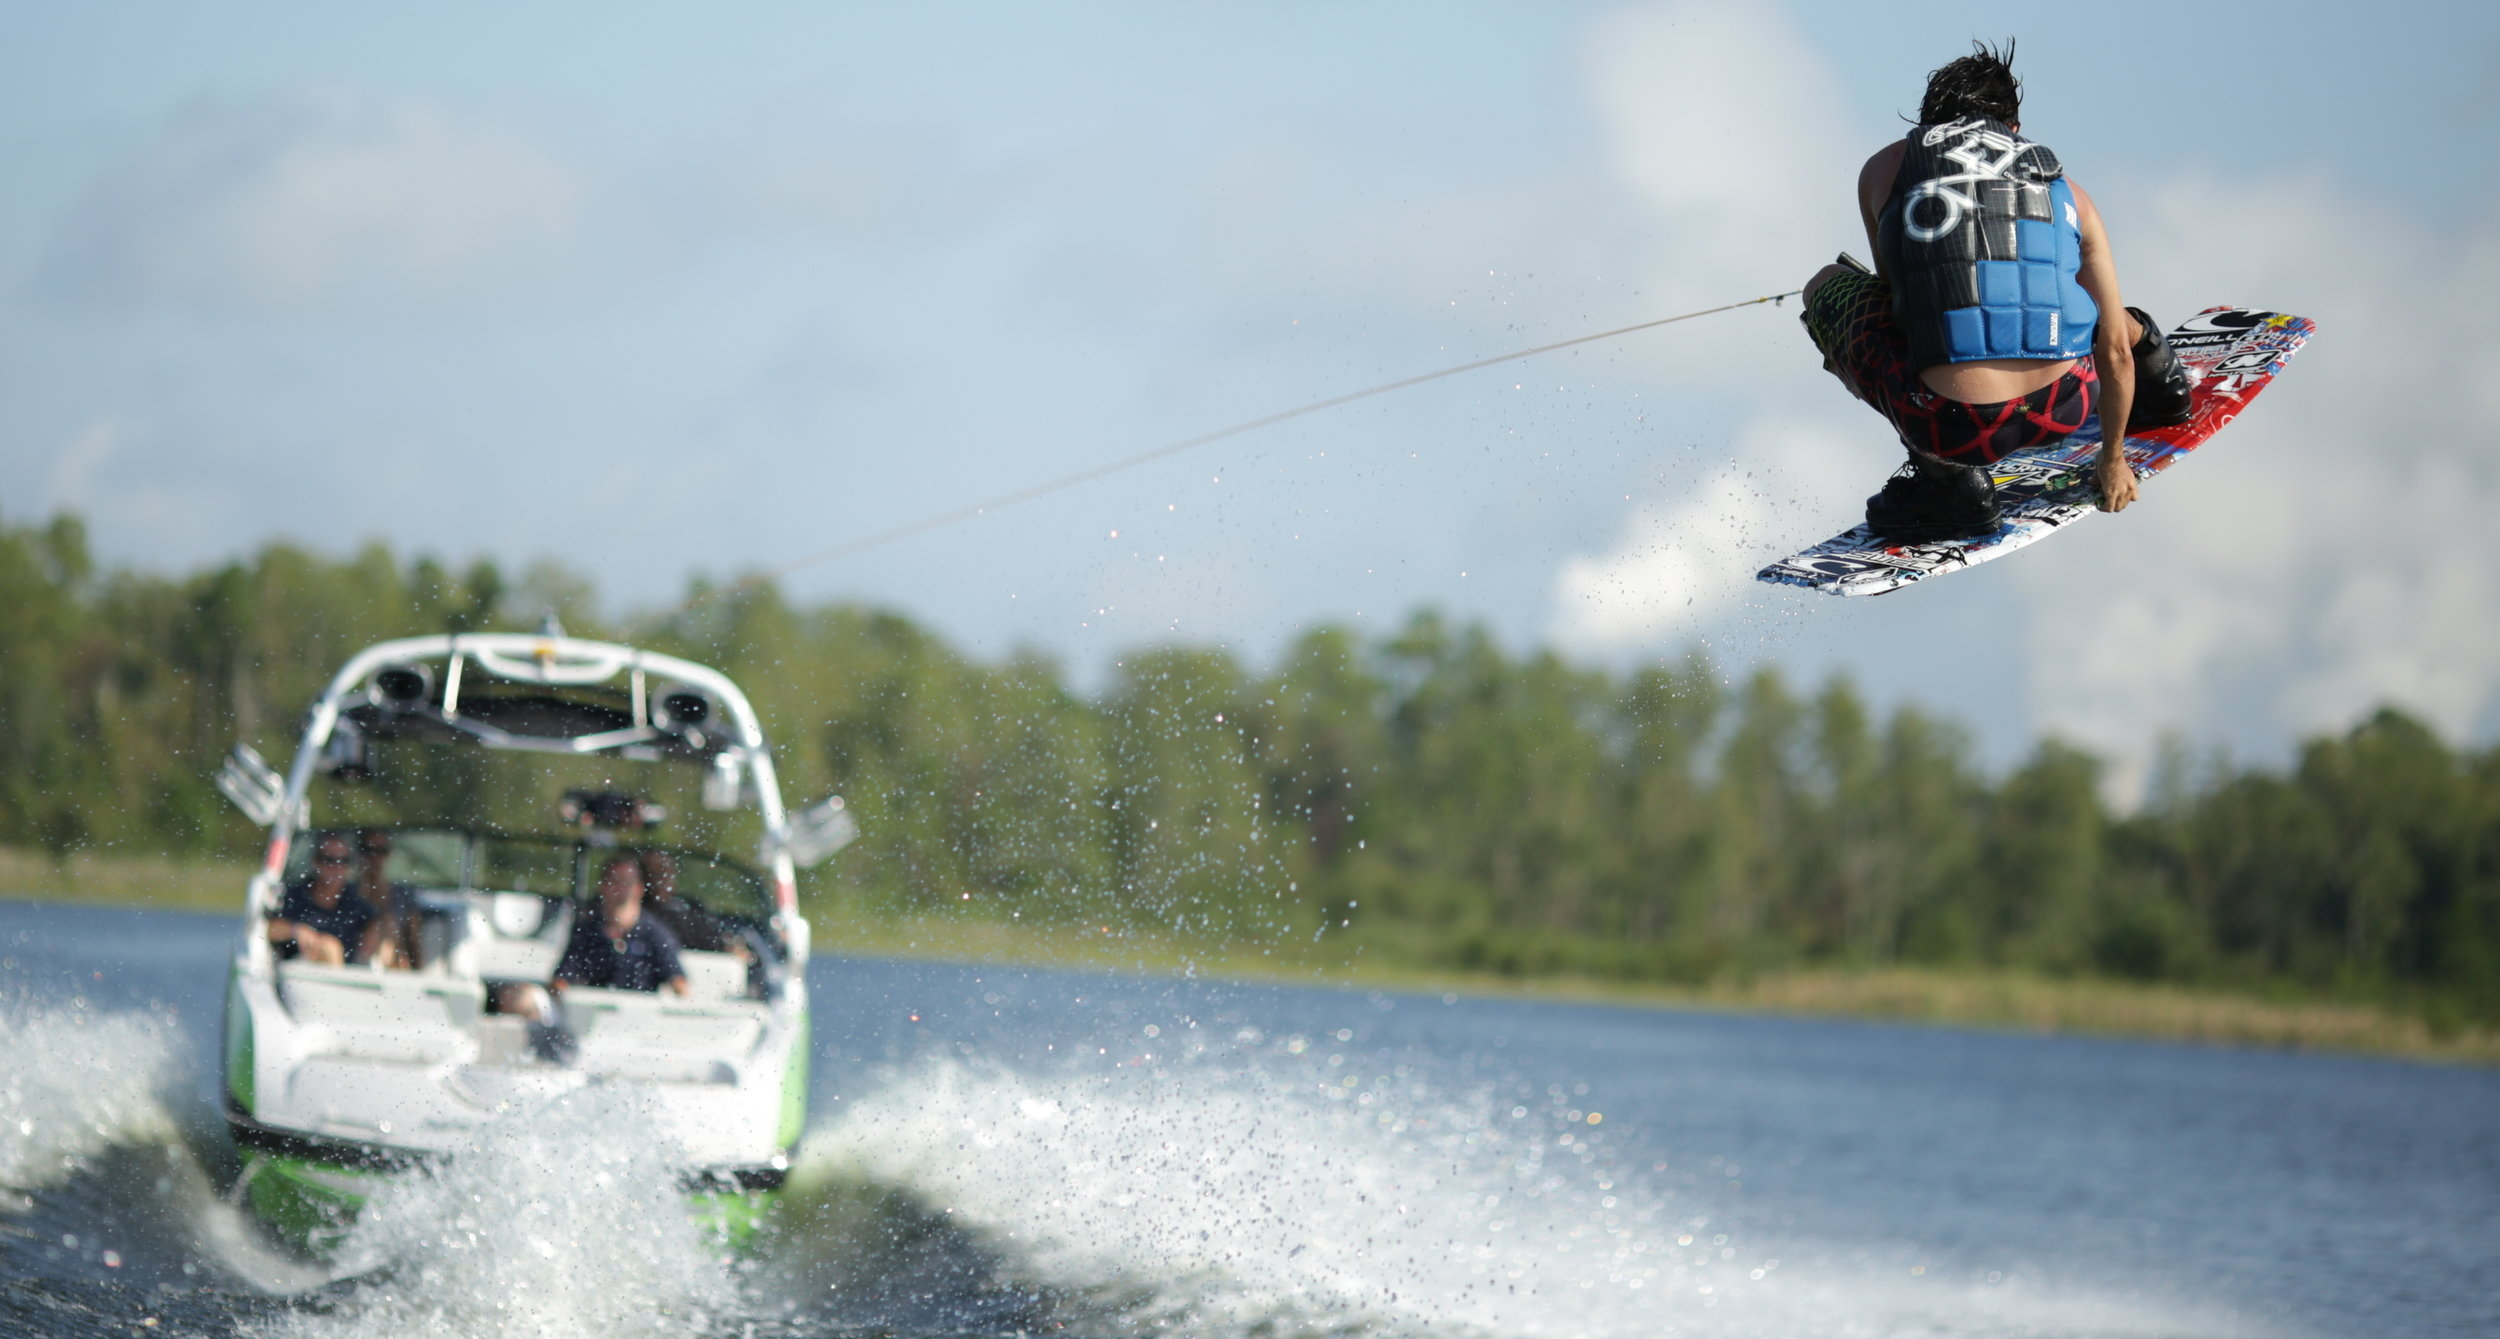 LTSM Wakeboats - LTS Marine's all-electric wakeboats are all the speed and fun of market-leading tow boats, without the fumes or harm to the environment.